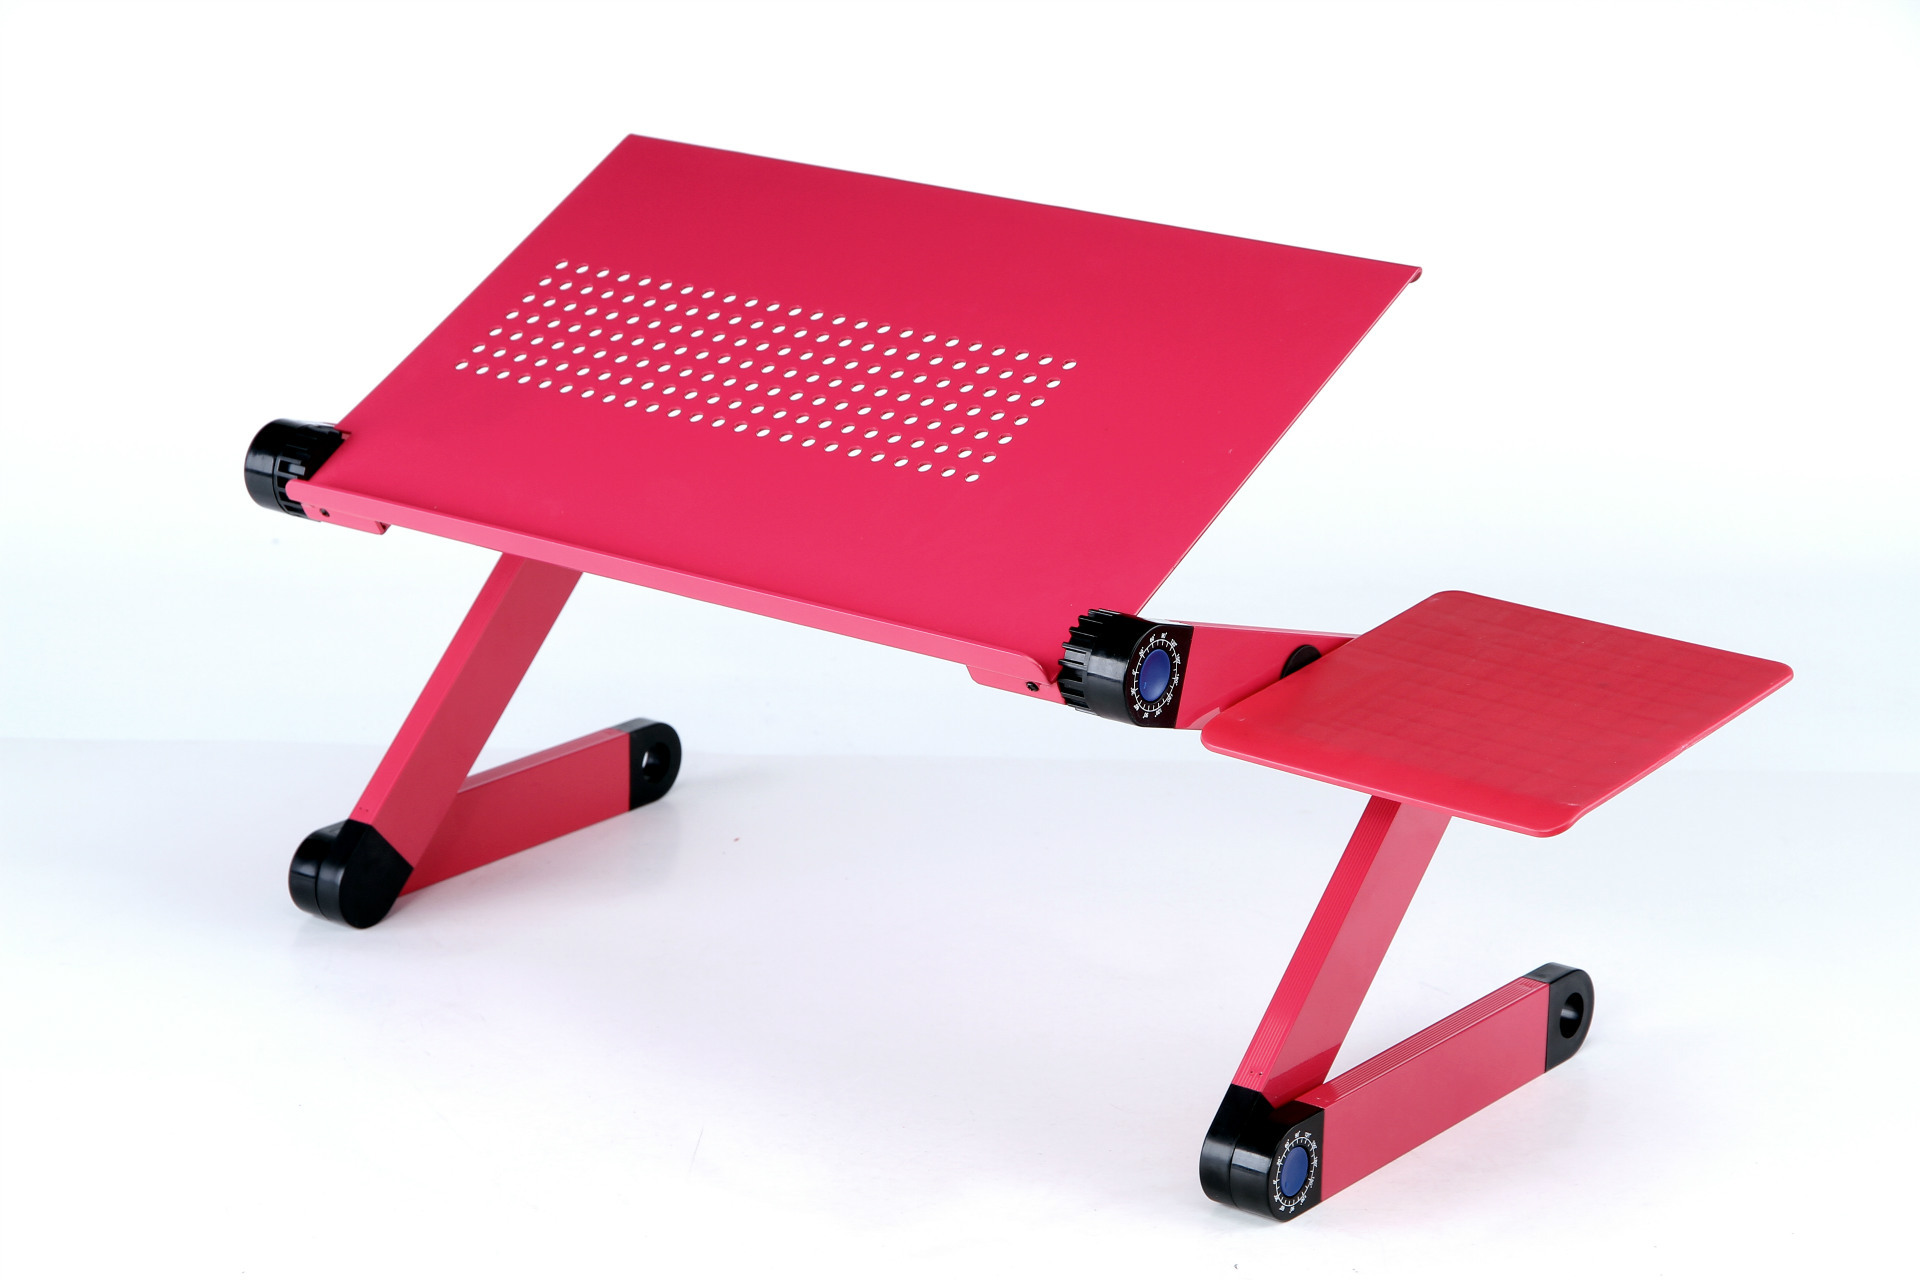 New Style Foldable Laptop desk Aluminum Alloy Portable Computer Desk Bed Office Adjustable Standing Desk With Cooling Fan aluminum alloy adjustable laptop desk lapdesks computer table stand notebook with cooling fan mouse board for bed sofa tray